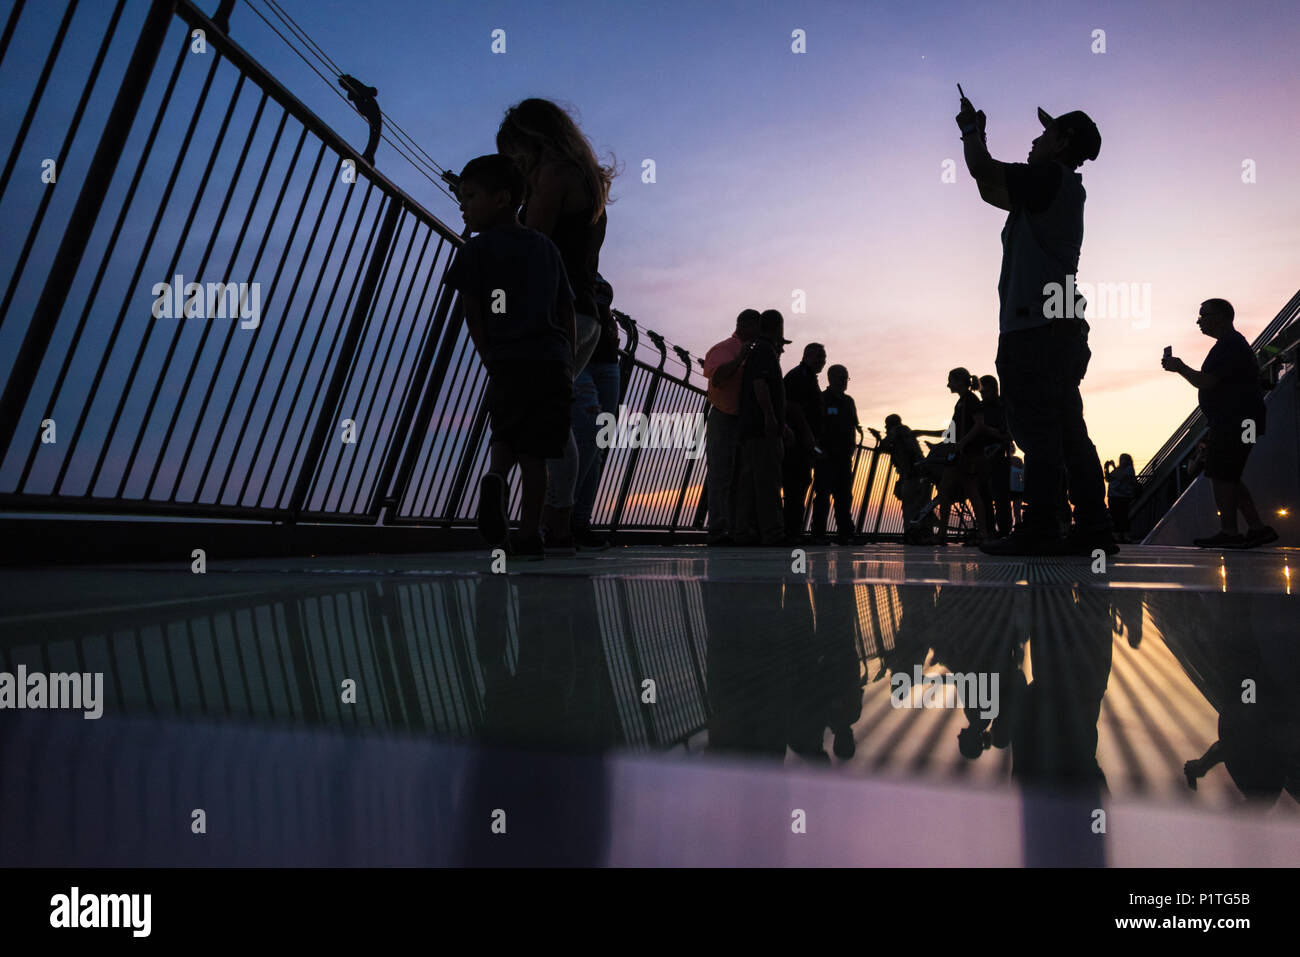 People taking photos at dusk overlooking Memphis, TN along the Mississippi River from the observation deck near the apex of the Memphis Pyramid. (USA) - Stock Image